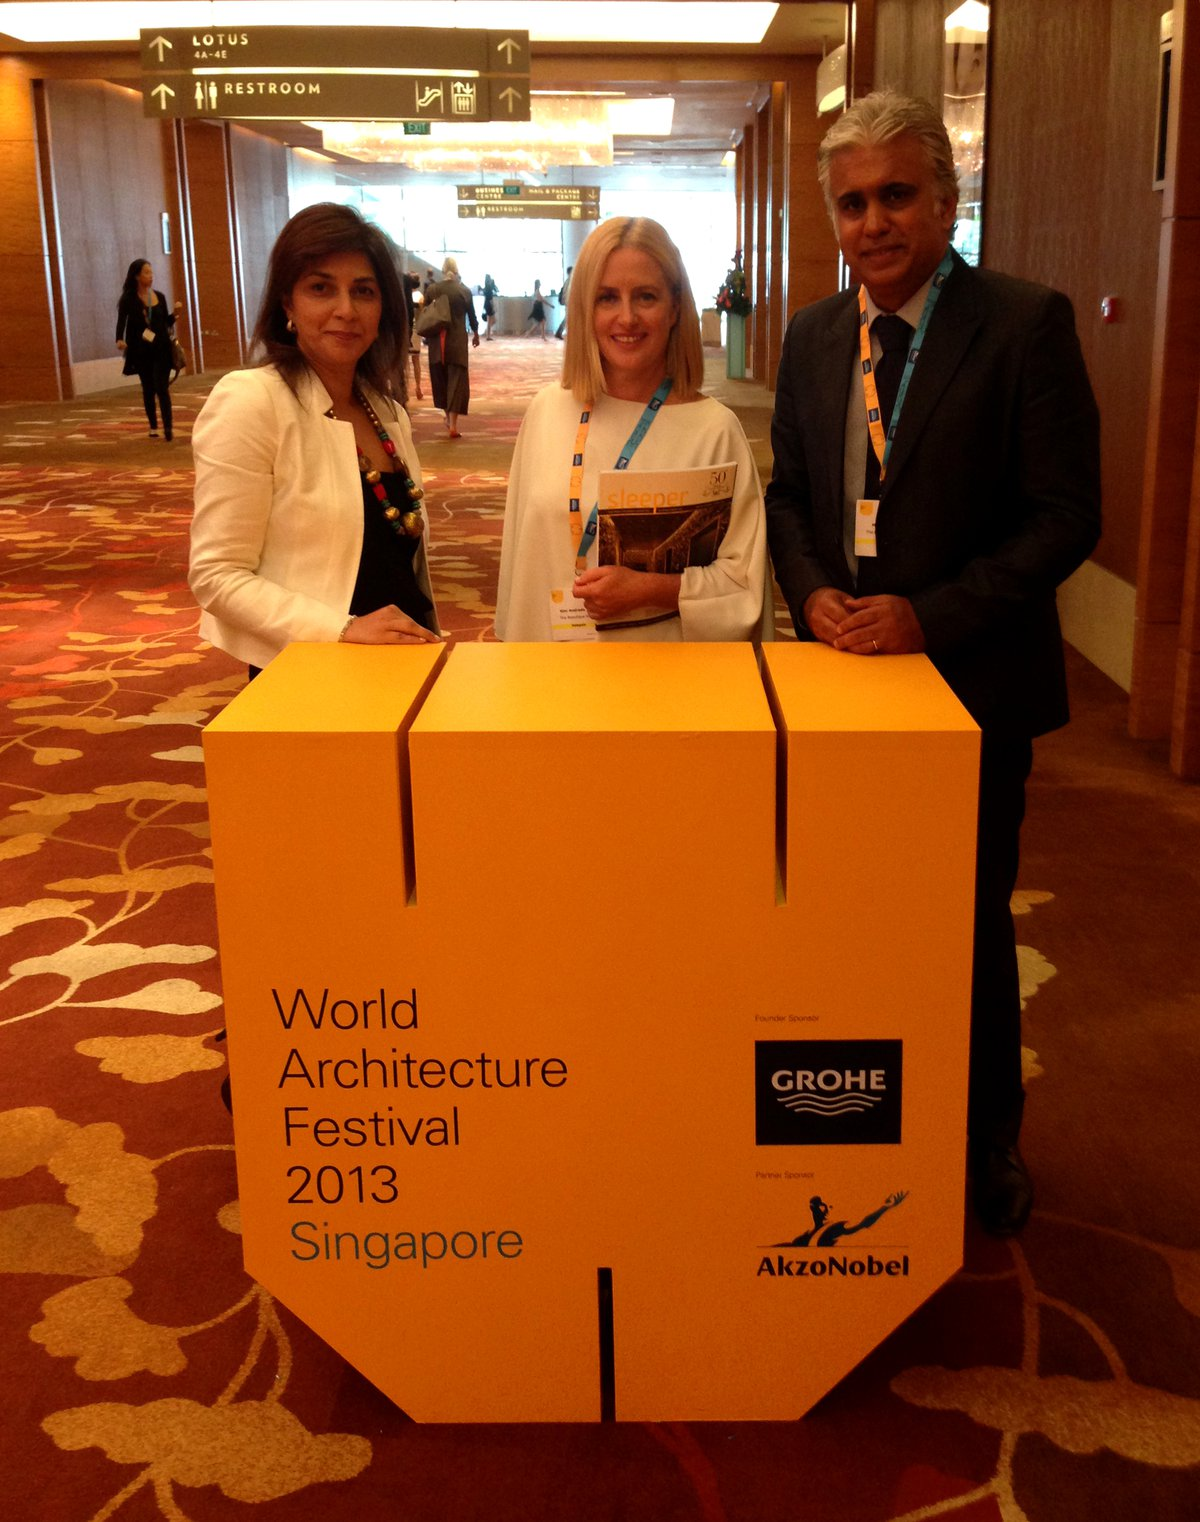 2013 World Architecture Festival Singapore